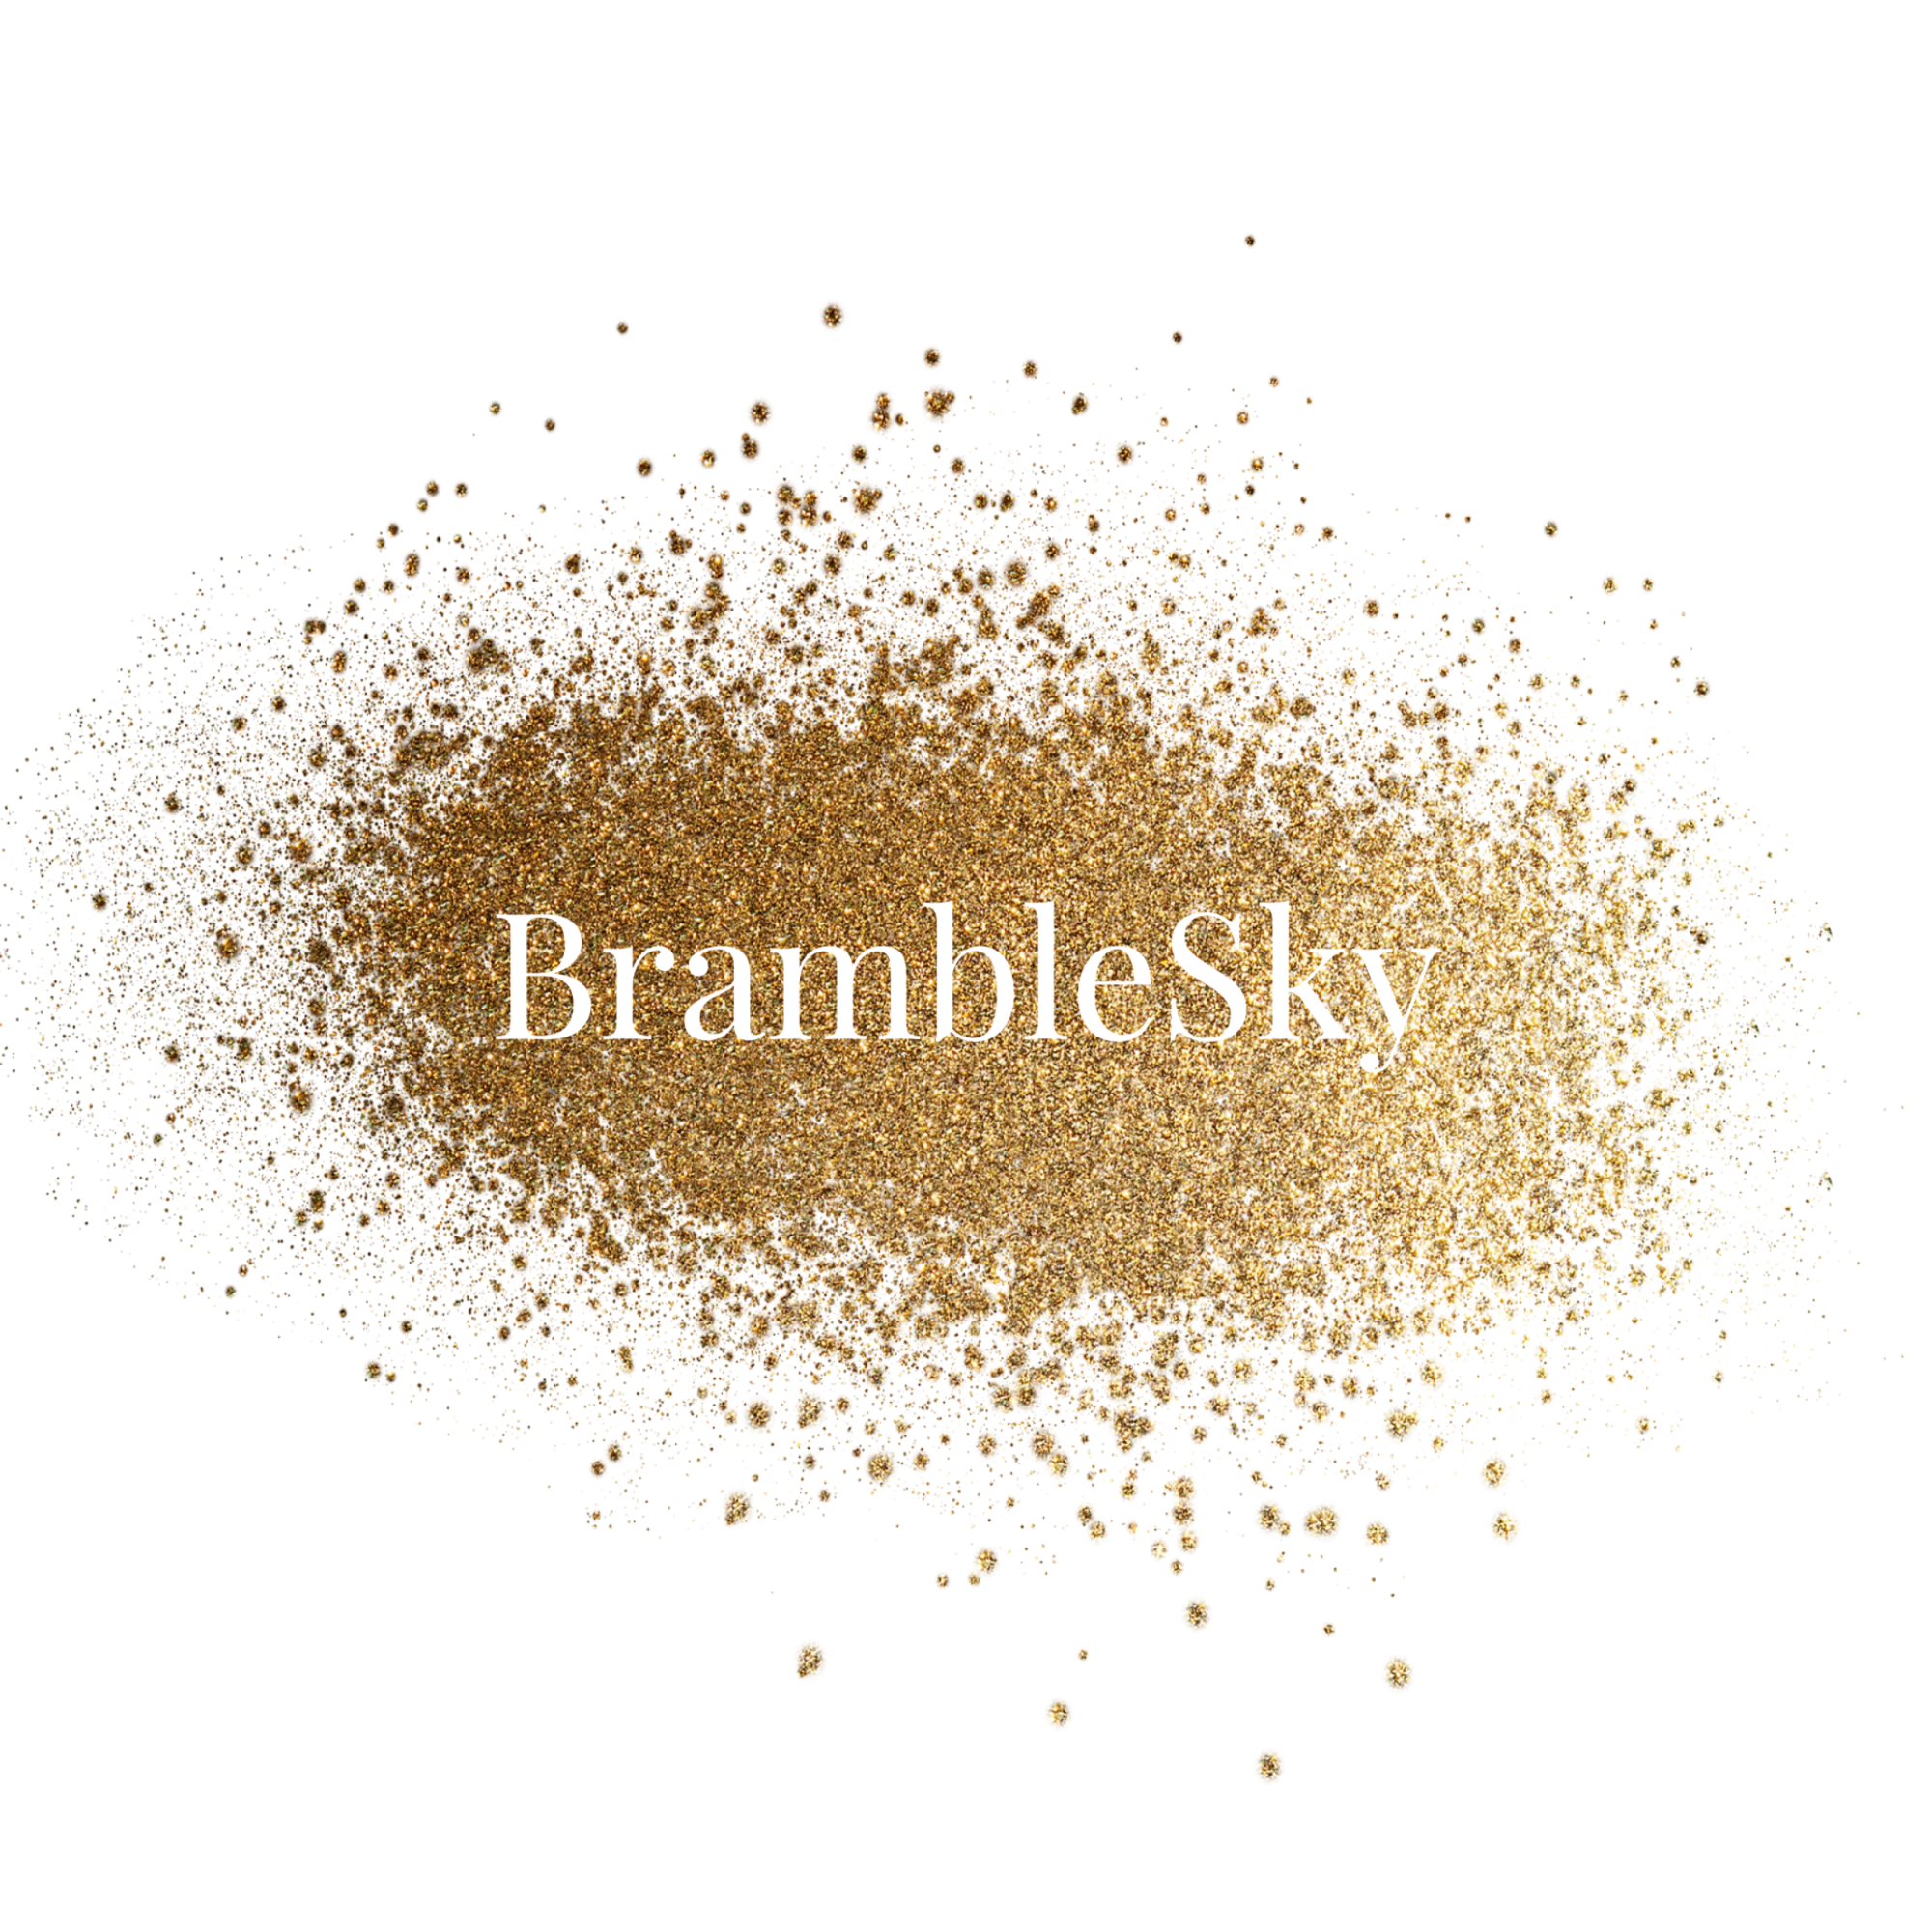 bramblesky event decor